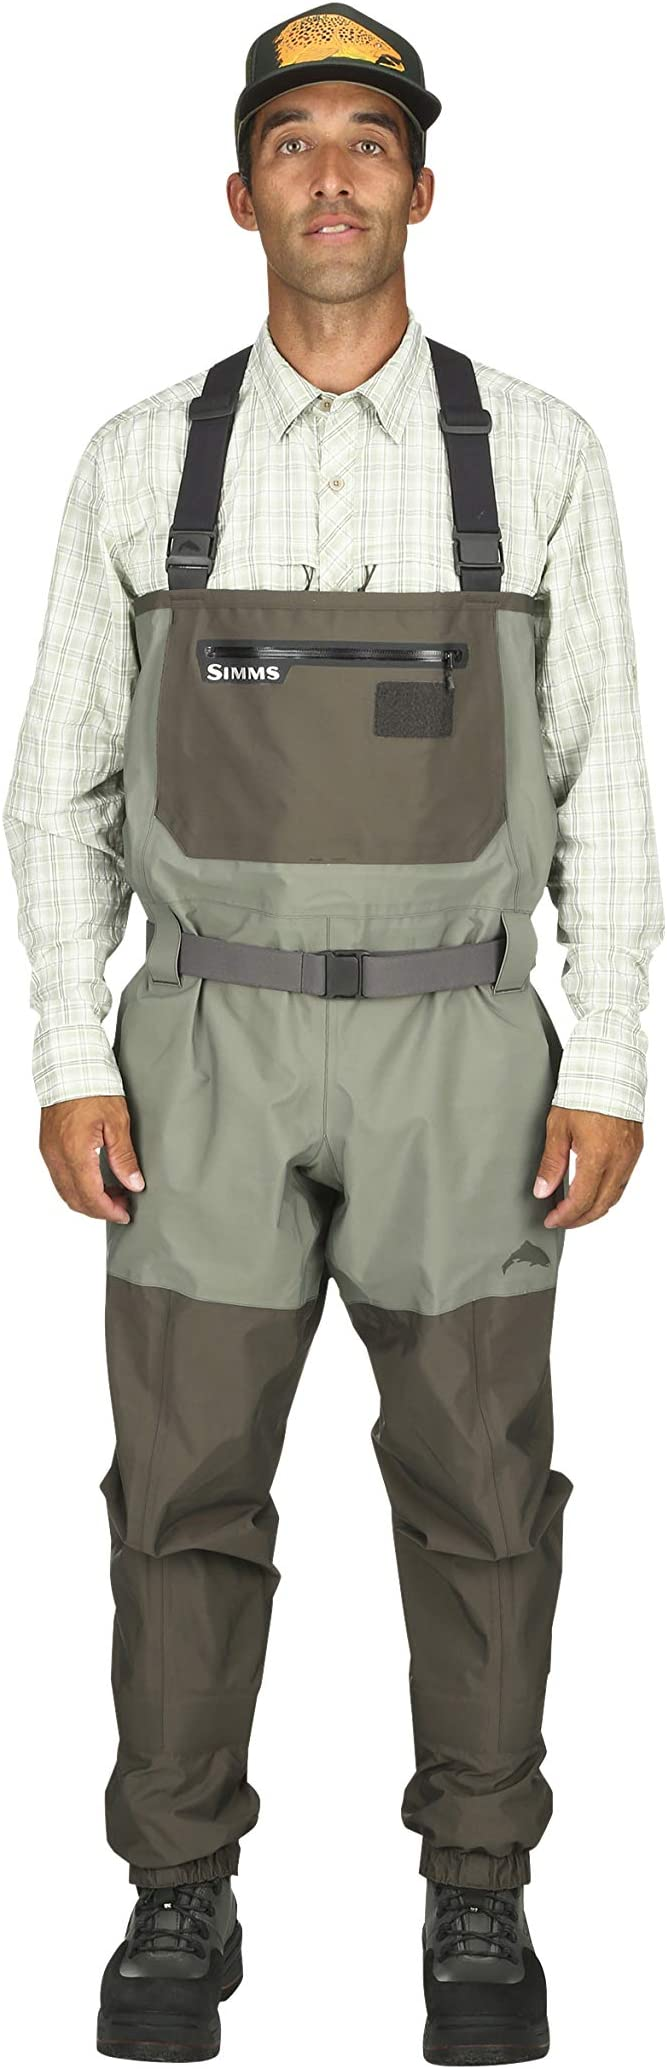 Breathable Fishing Stocking Foot Waders Simms Freestone Stockingfoot Waders for Men 4 Layer Waterproof Chest Waders with Gravel Guards Fleece Lined Pockets /& Fly Patch